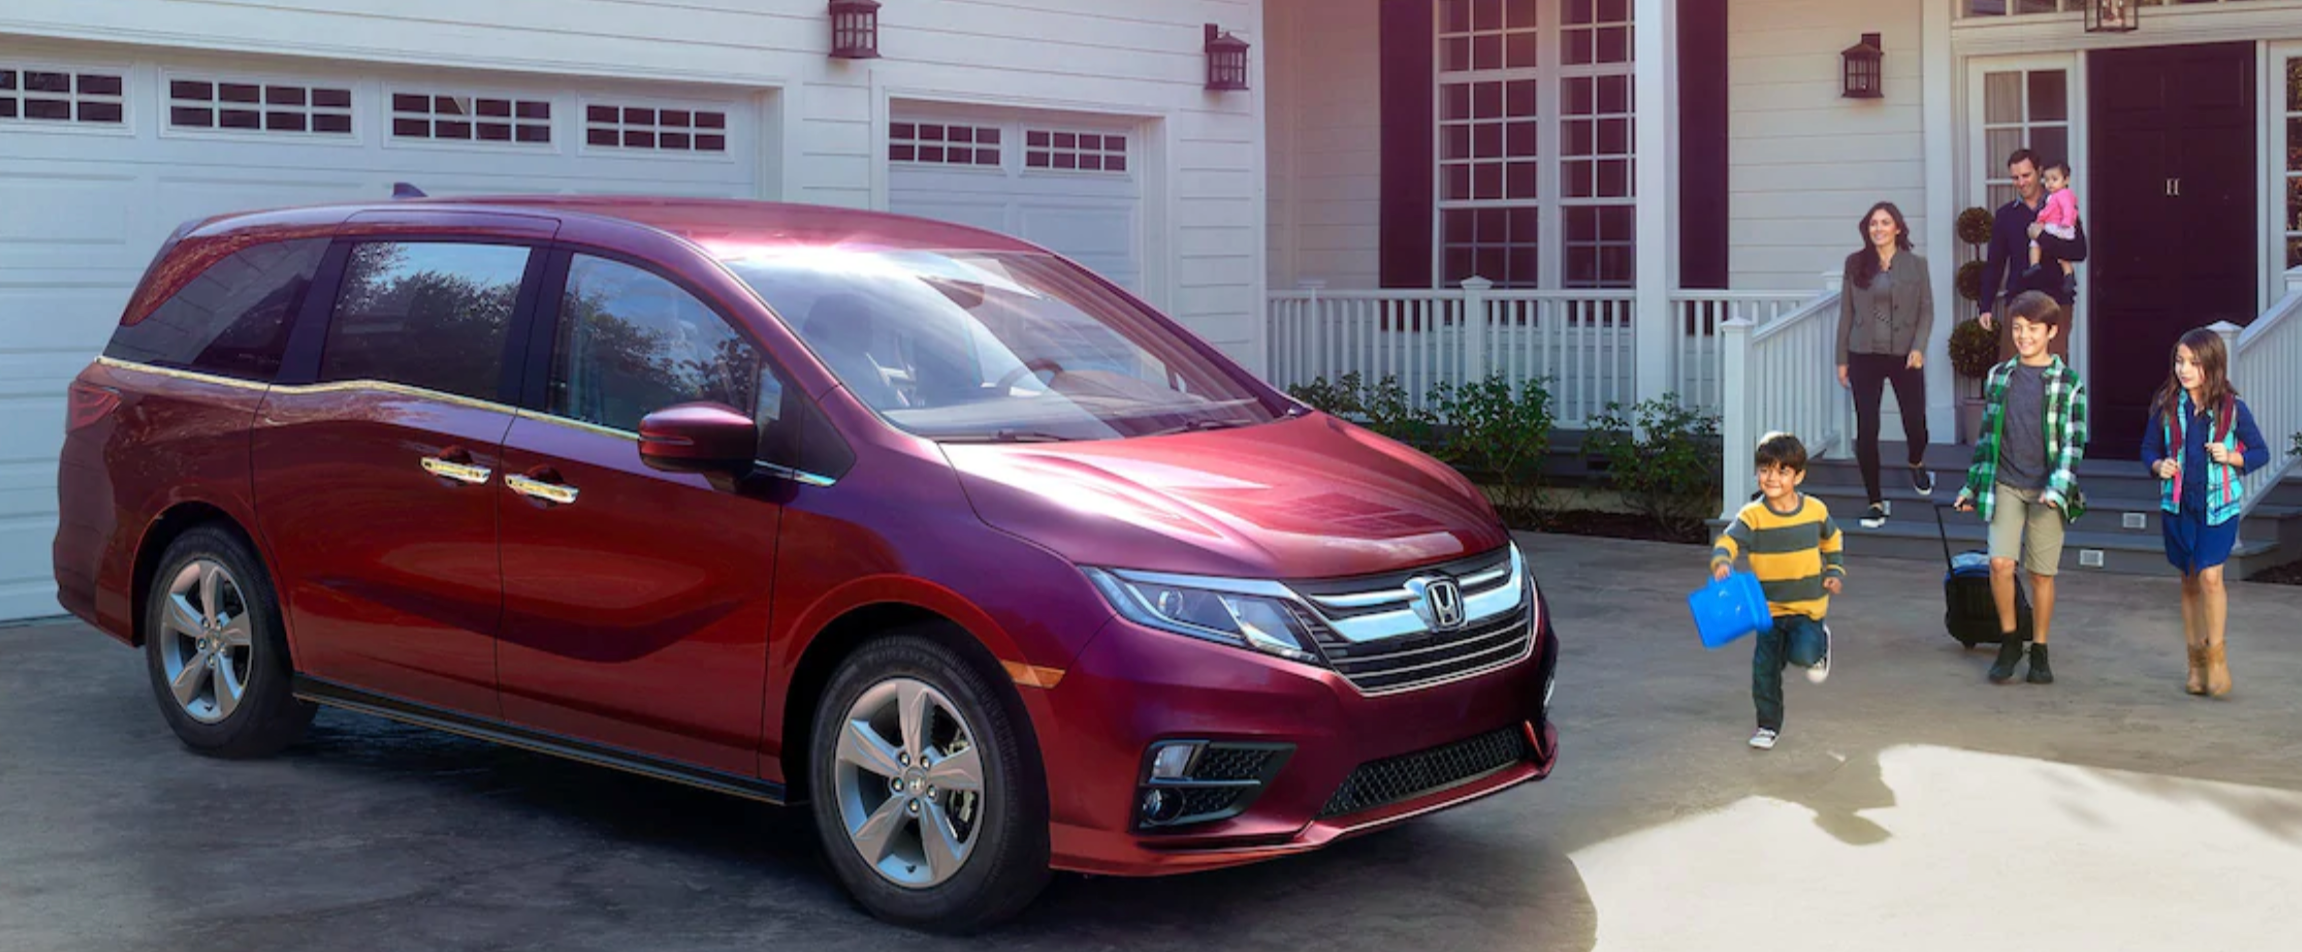 Honda Odyssey And Accord Named Best Cars For Families